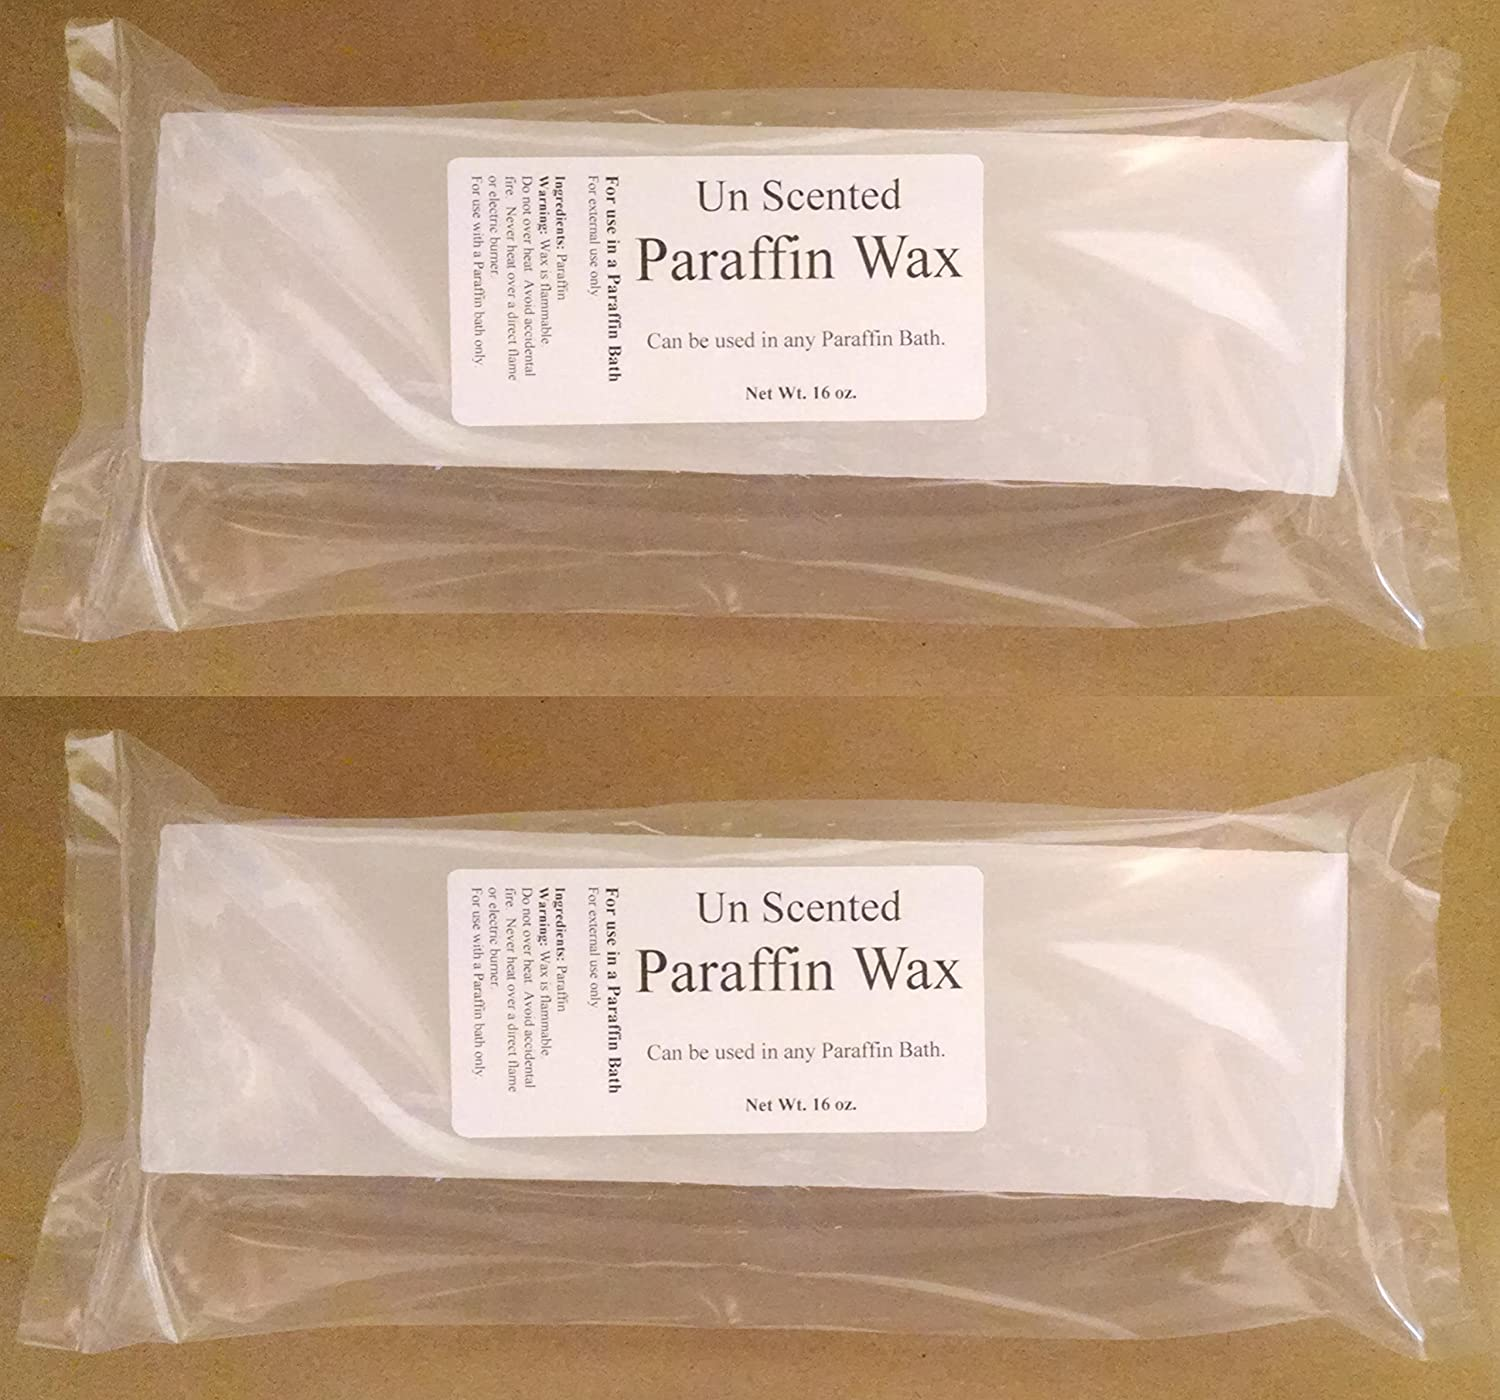 Amazon Unscented Spa Wax 2 Pounds Paraffin Refill Un Scented The Salt Baron Fragrance Free Health Personal Care